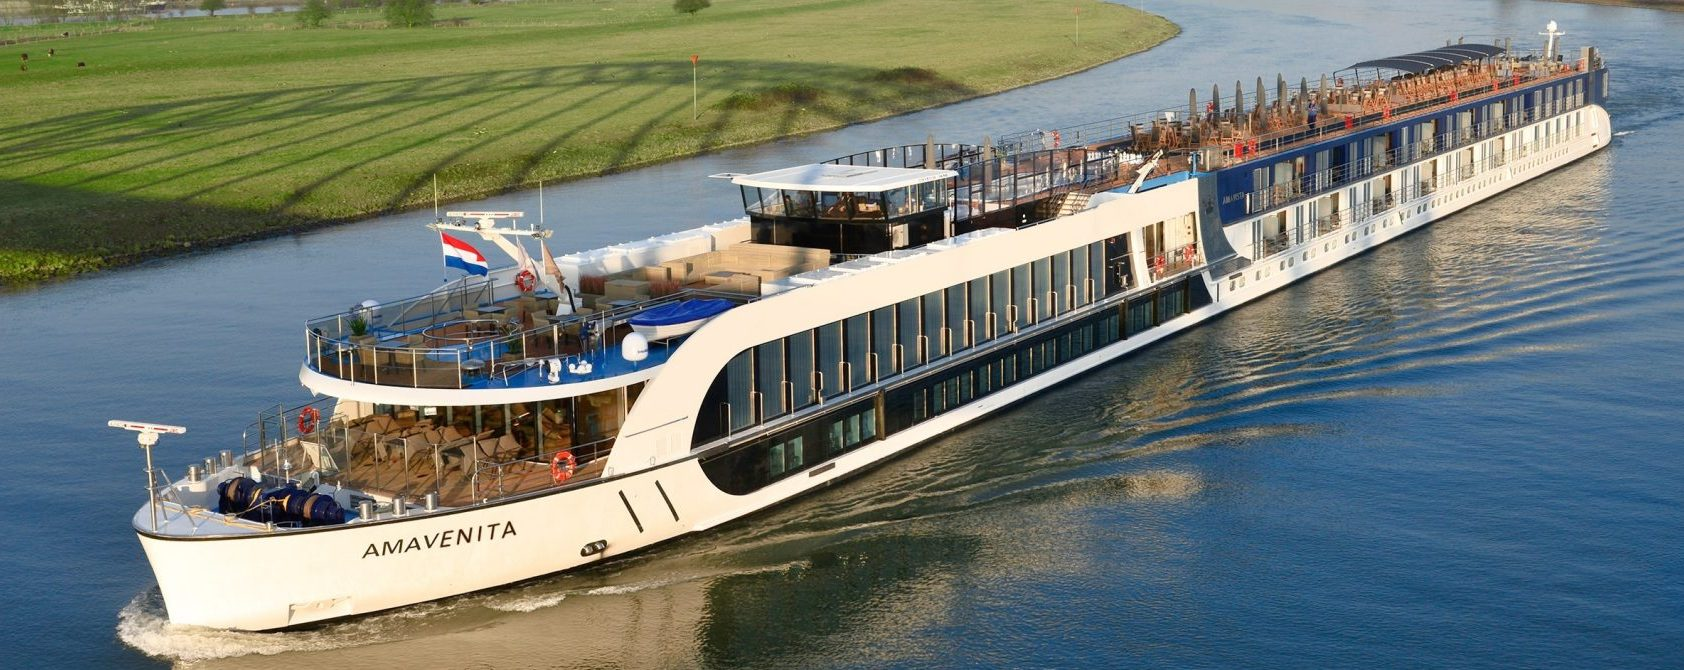 AmaWaterways AmaVenita ship